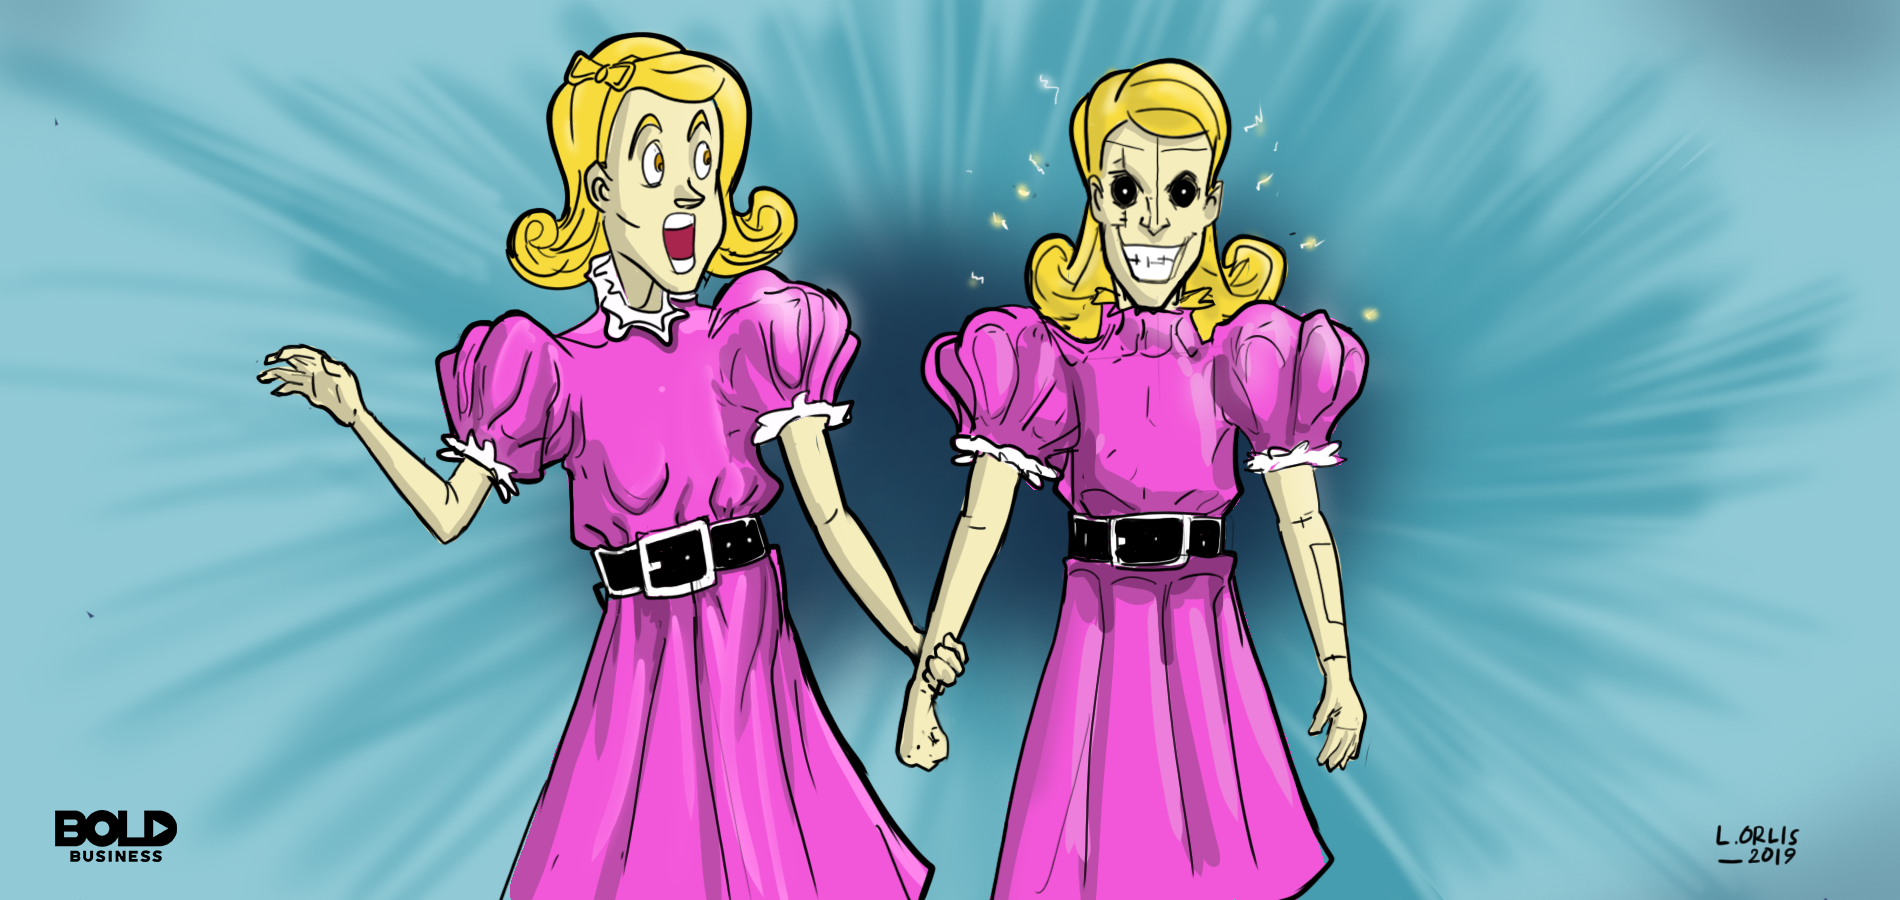 Robot clones in purple dresses